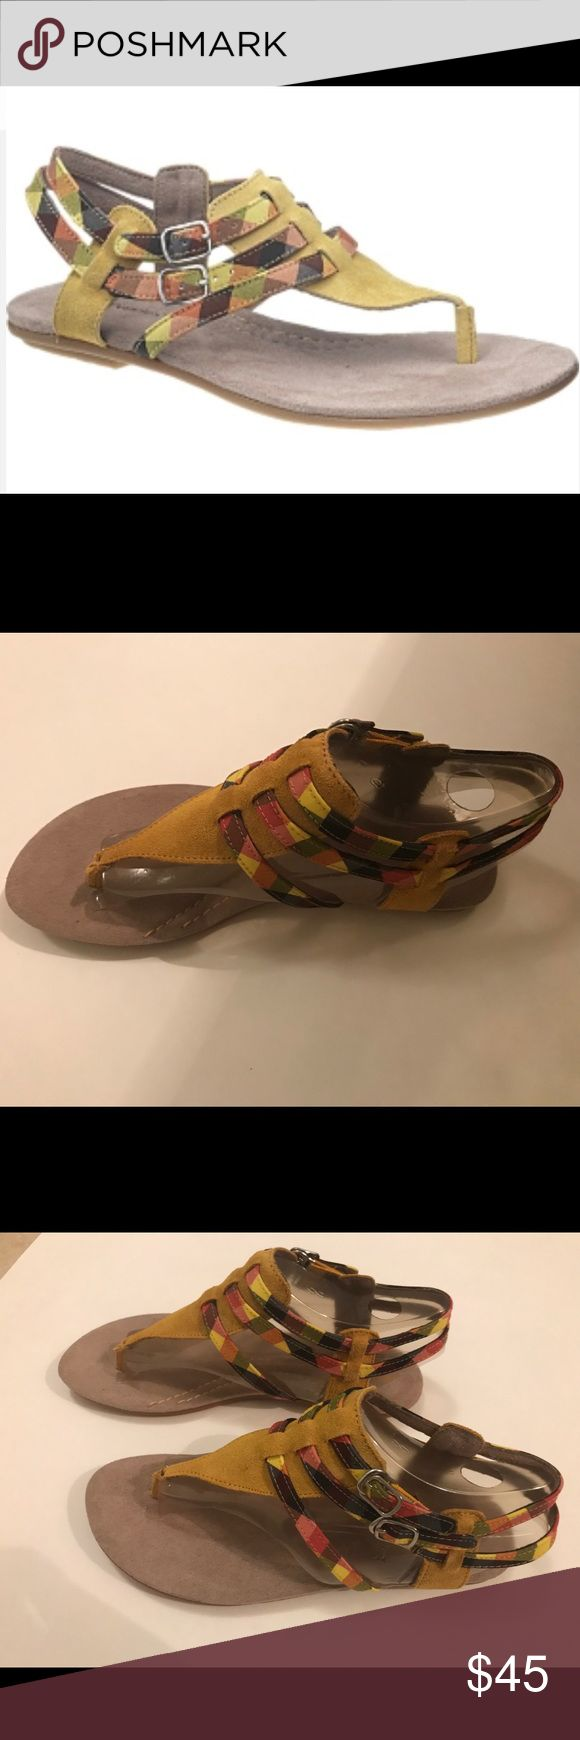 Hush Puppies suede yellow and plaid sandals 8.5 Hush puppies Suede yellow and plaid sandals  Size 8.5 medium Hush Puppies Shoes Sandals